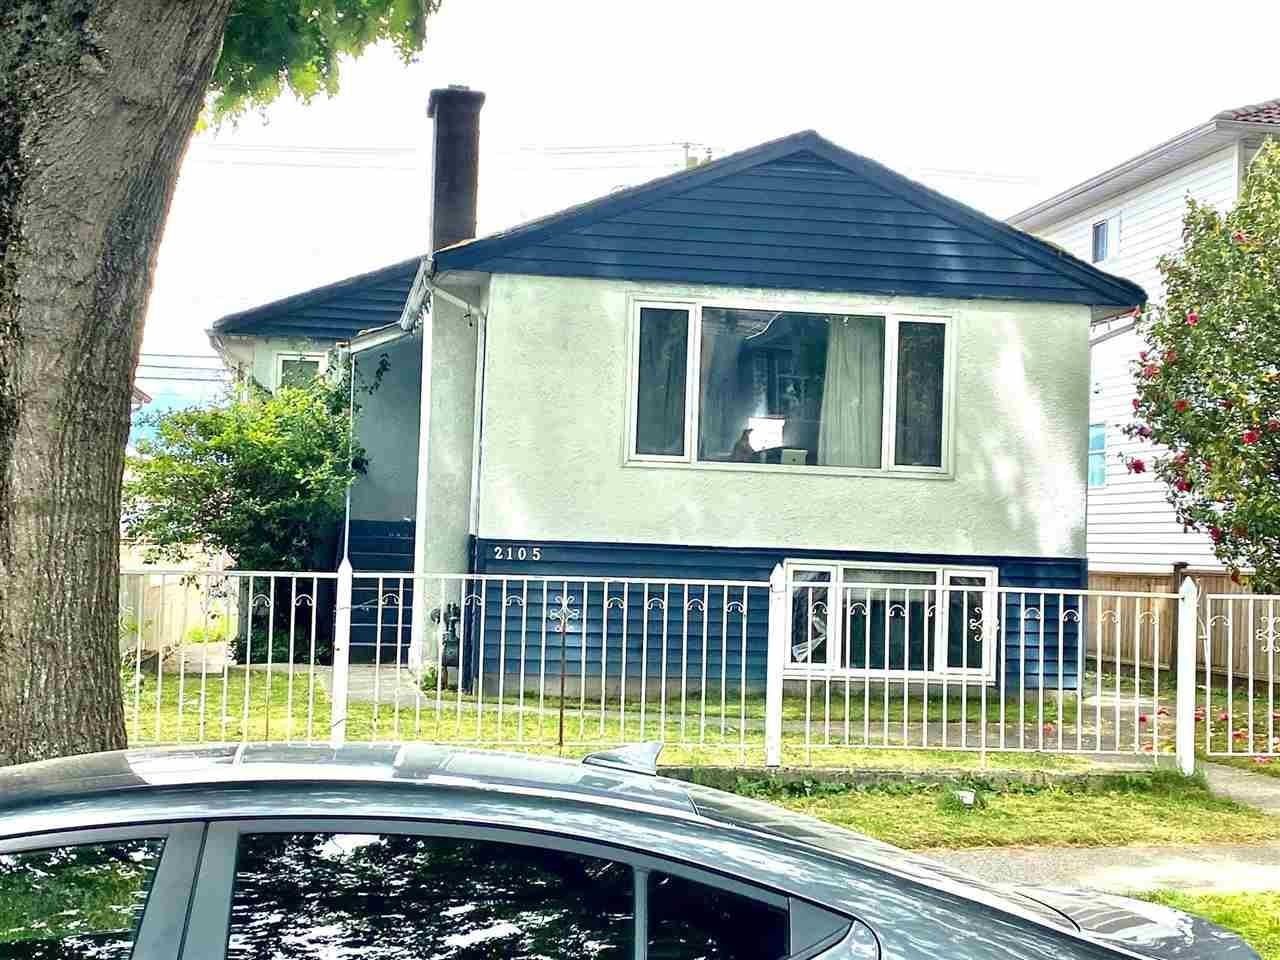 Main Photo: 2105 E 43RD Avenue in Vancouver: Killarney VE House for sale (Vancouver East)  : MLS®# R2595378